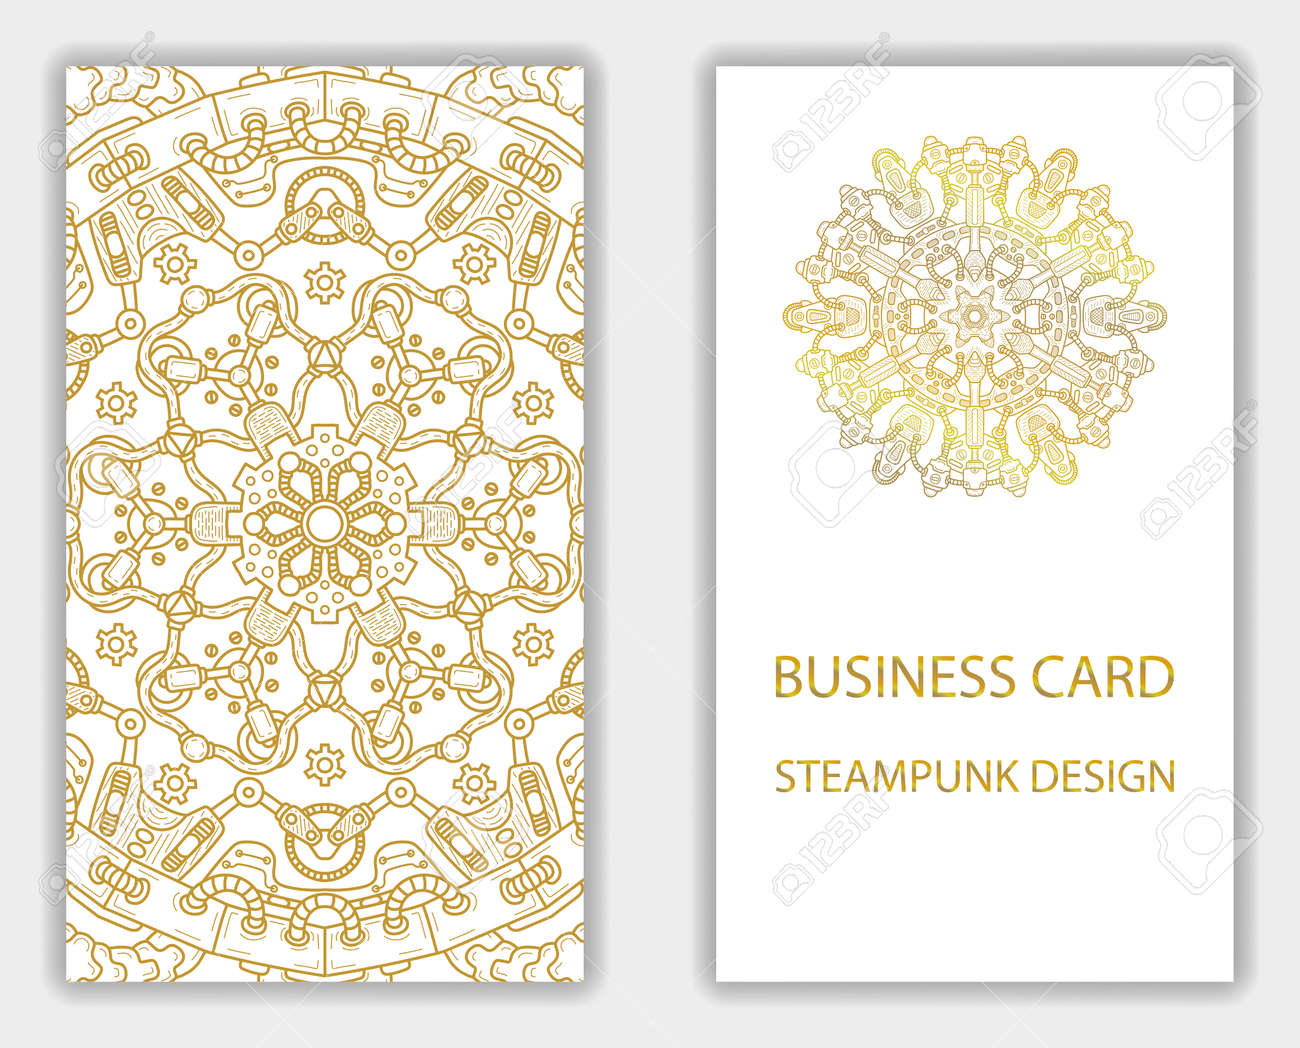 Business Card With Steampunk Abstract Design Elements Steam